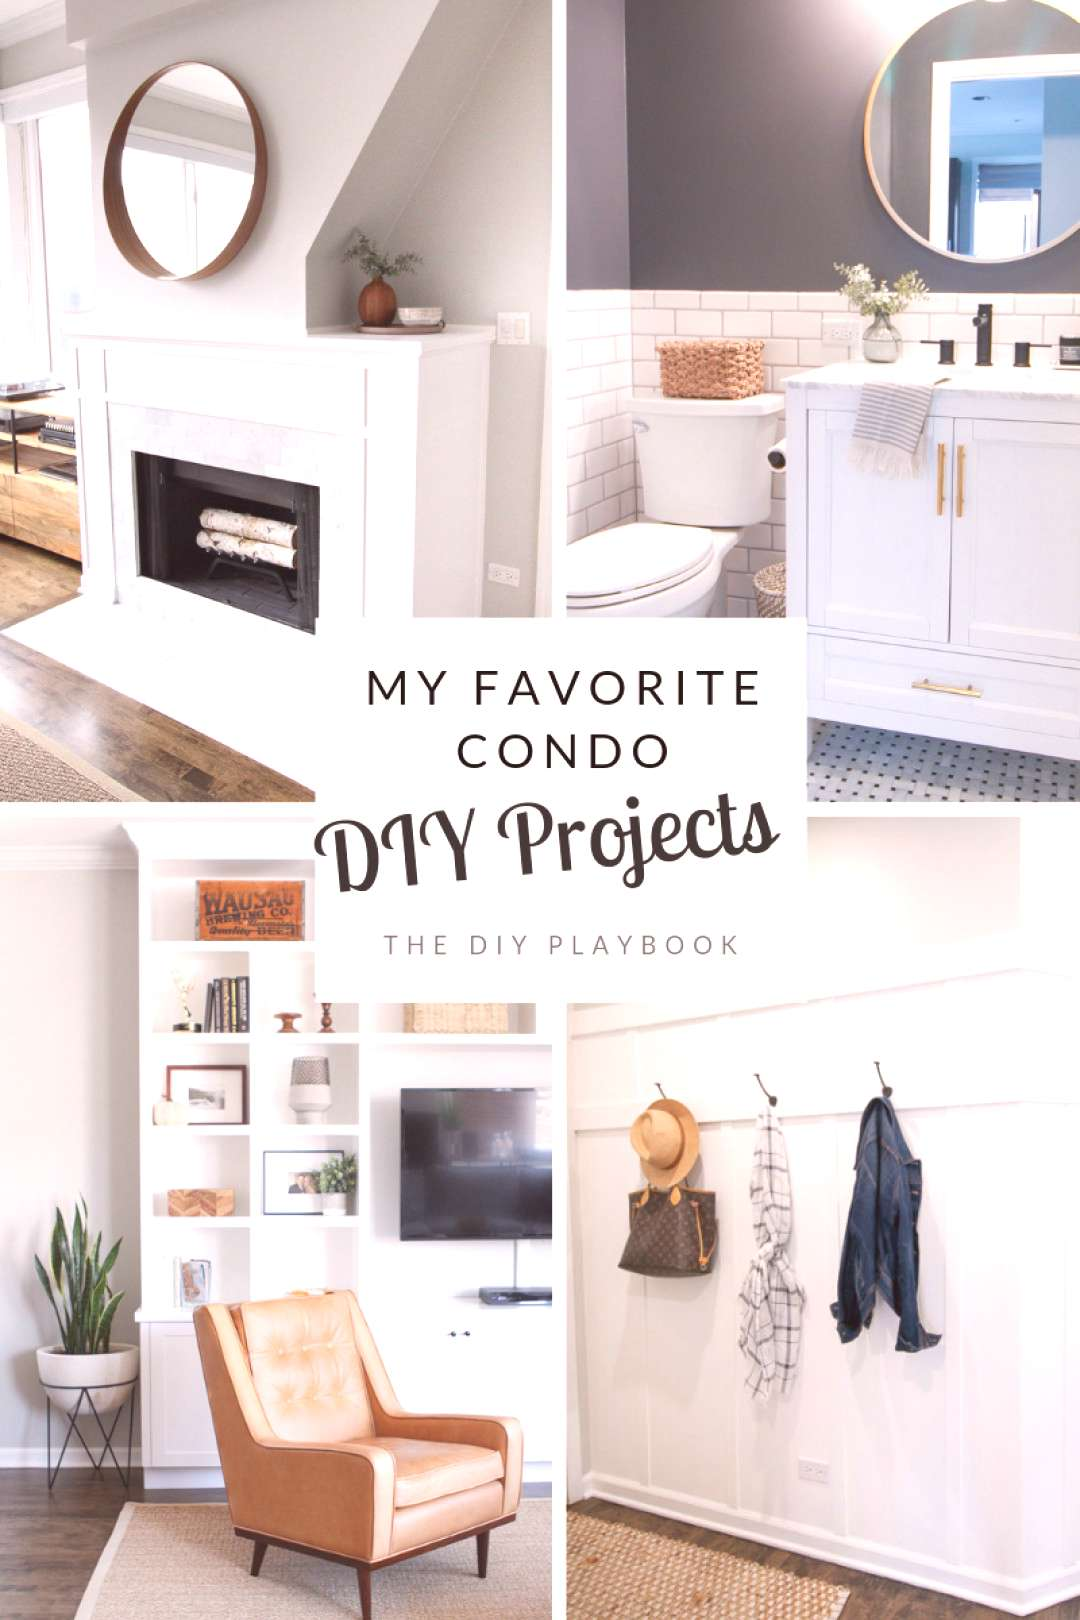 Here's a look at some of my favorite DIY projects from our Chicago condo. Take a look at all of the